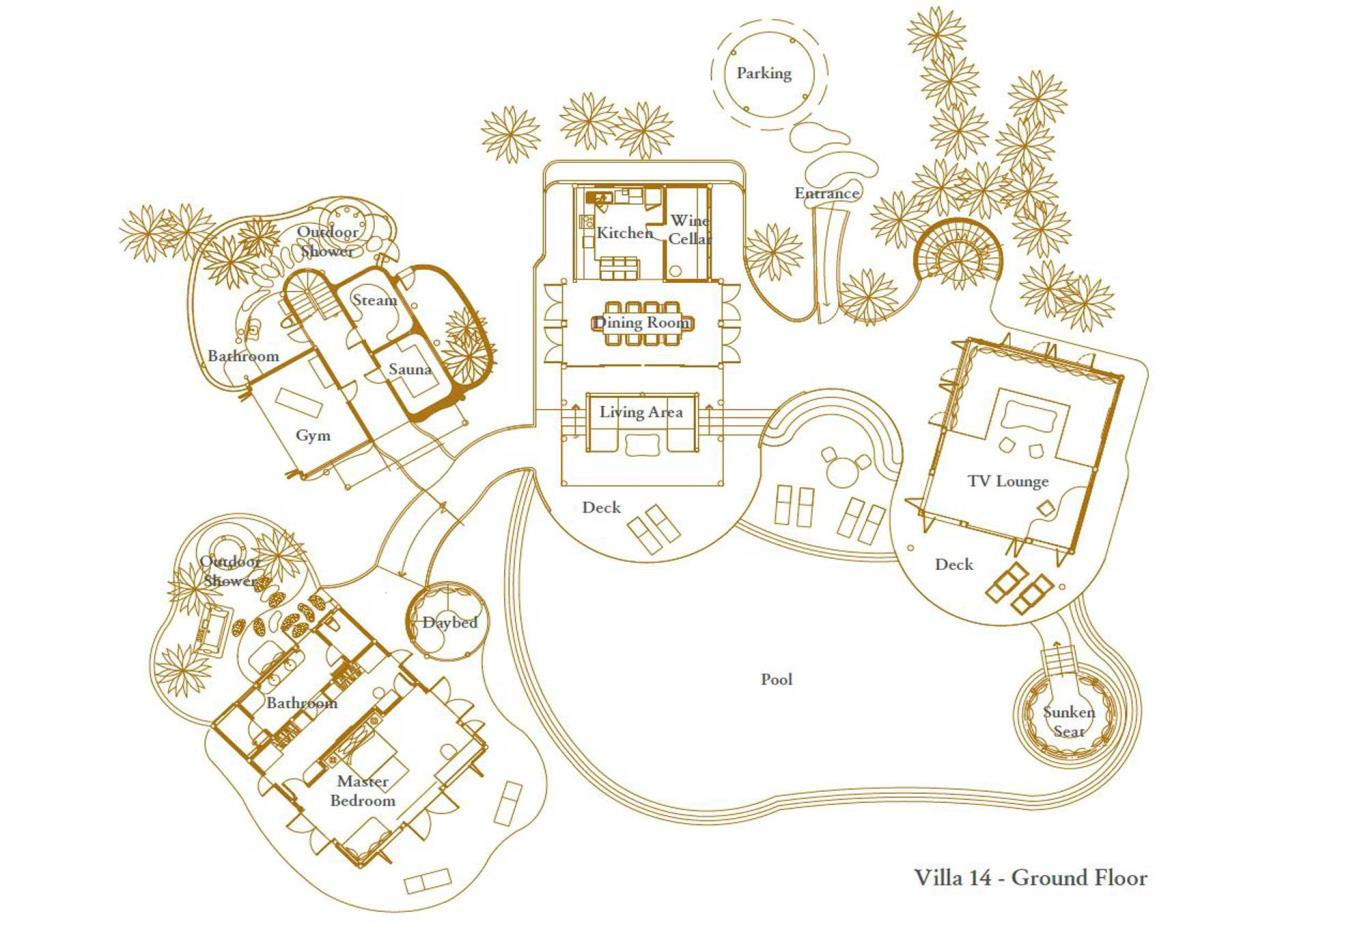 Villa 14 Ground Floor Floorplan